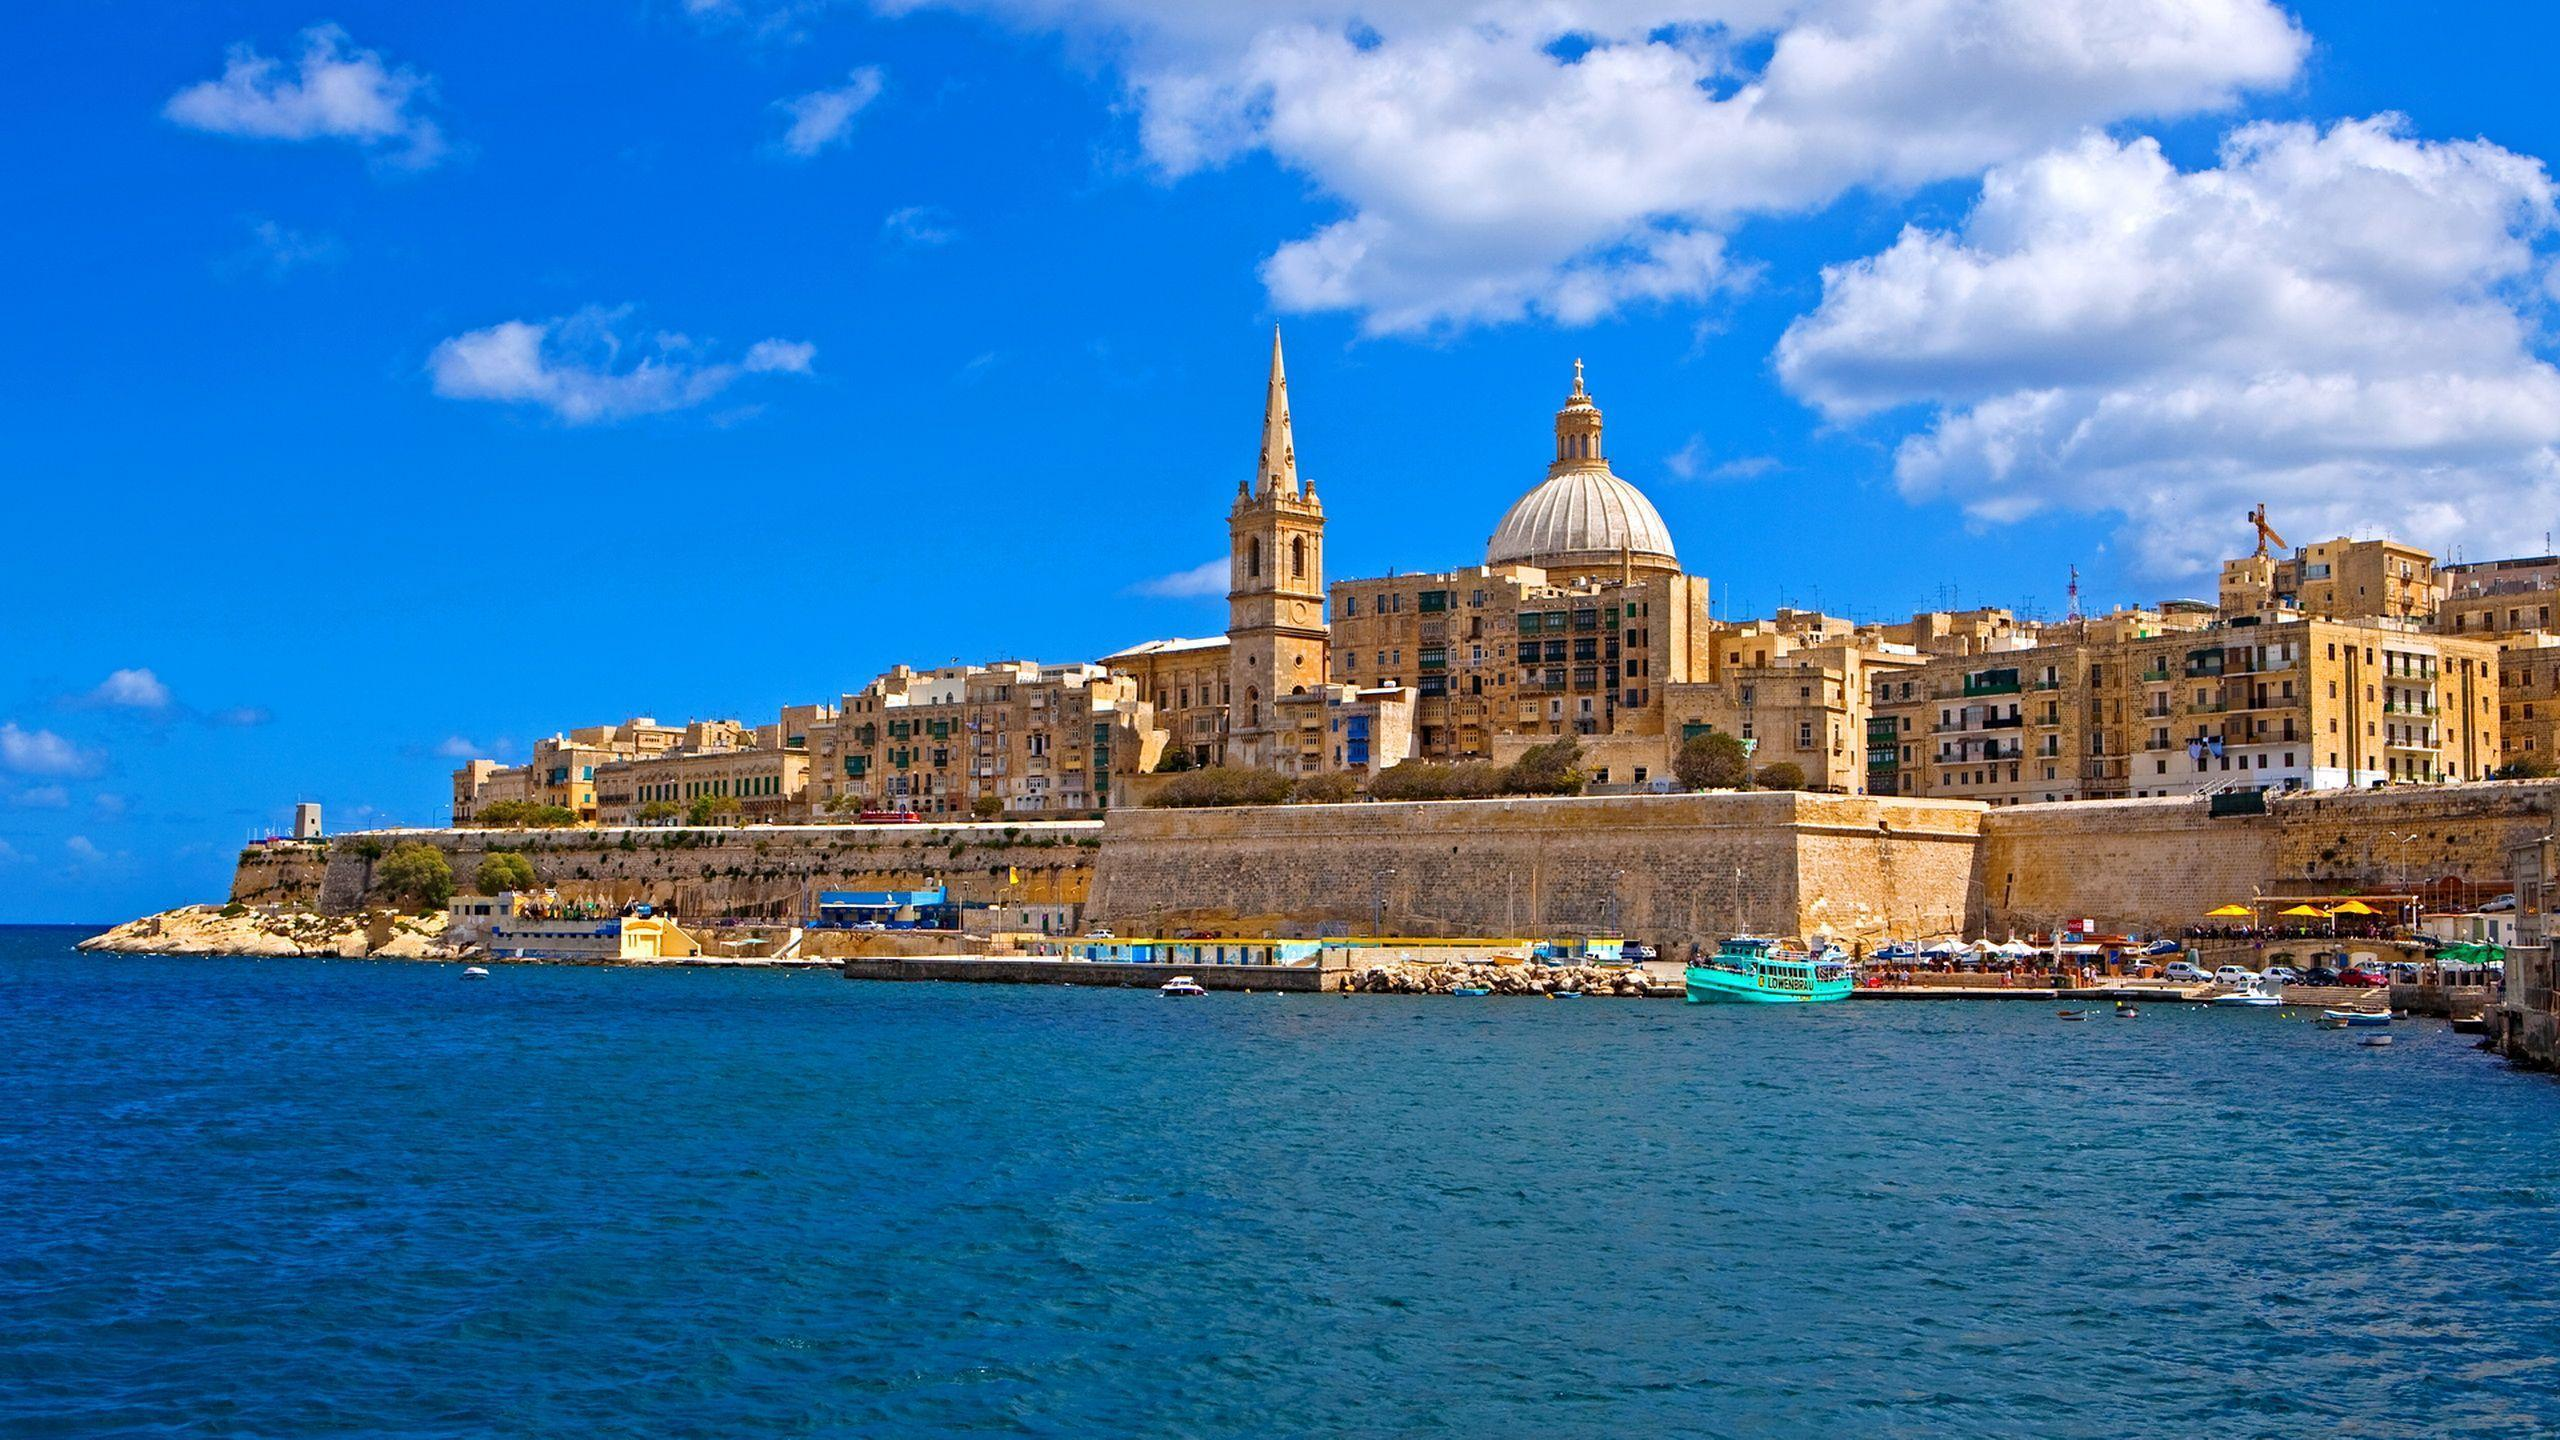 Malta Wallpapers, Download Malta HD Wallpapers for Free, GuoGuiyan ...